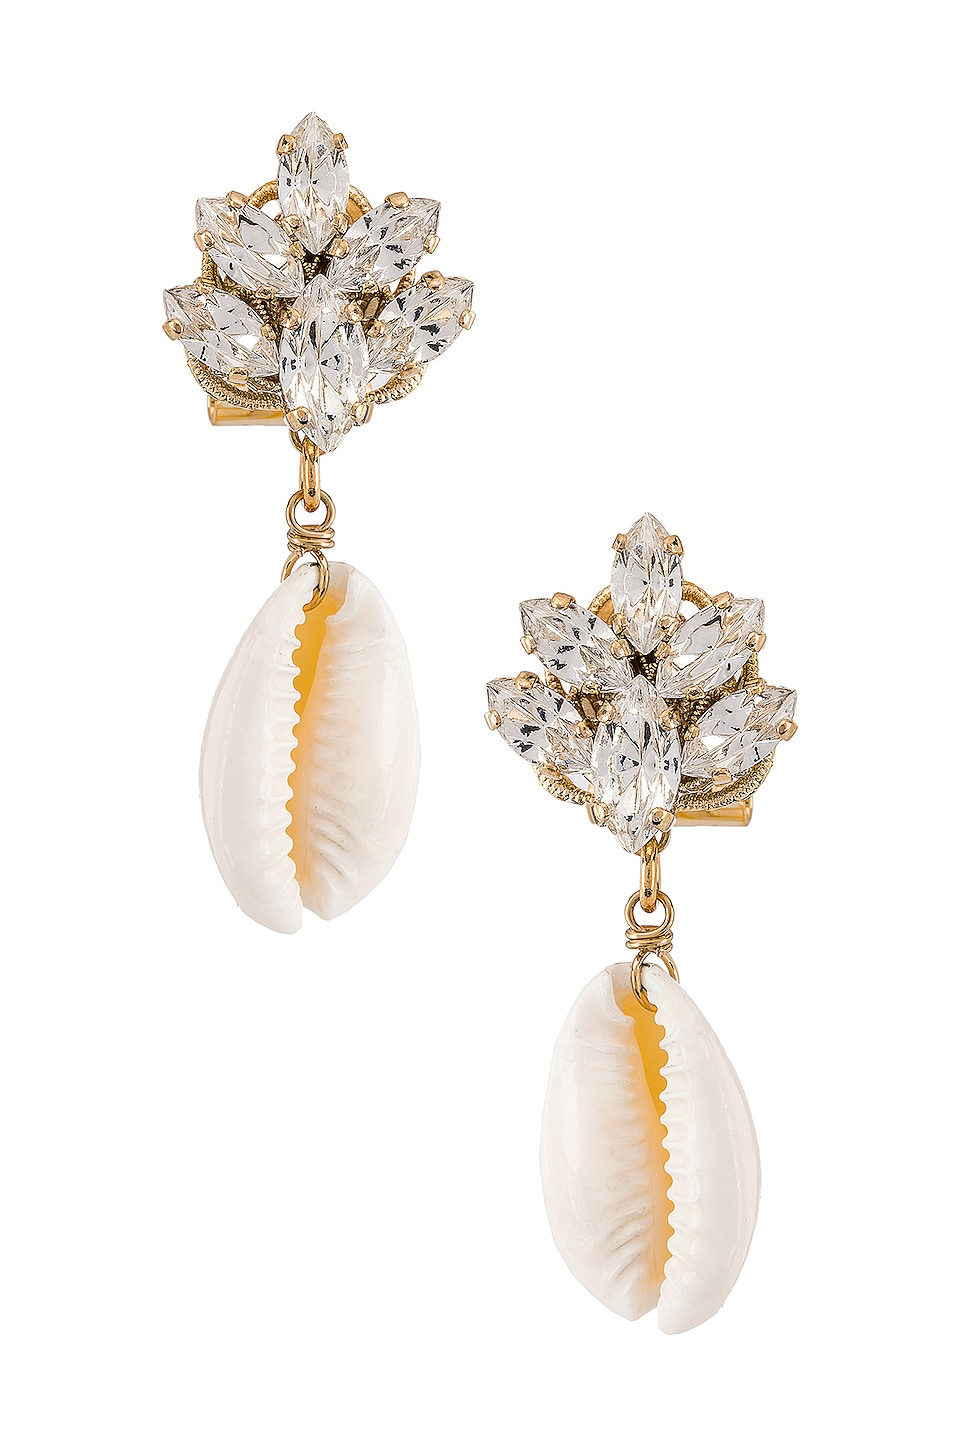 Anton Heunis ANTON HEUNIS CLUSTER SHELL EARRINGS IN METALLIC GOLD.